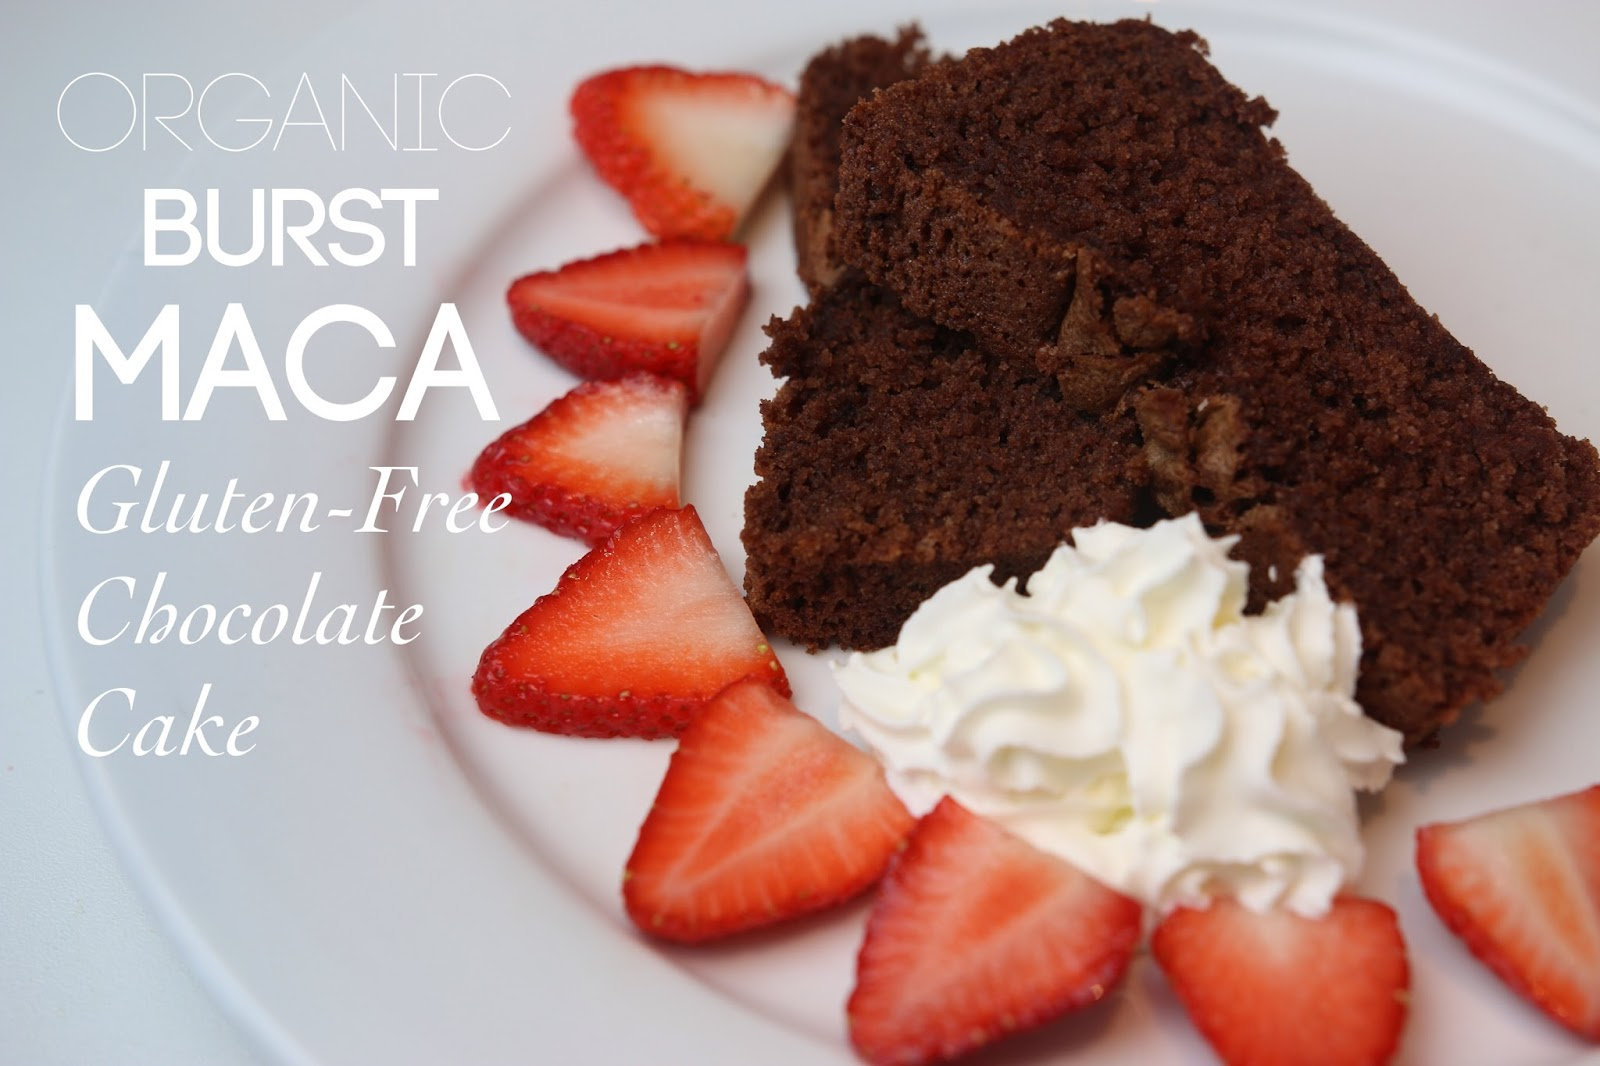 Gluten-free Chocolate Cake with Maca